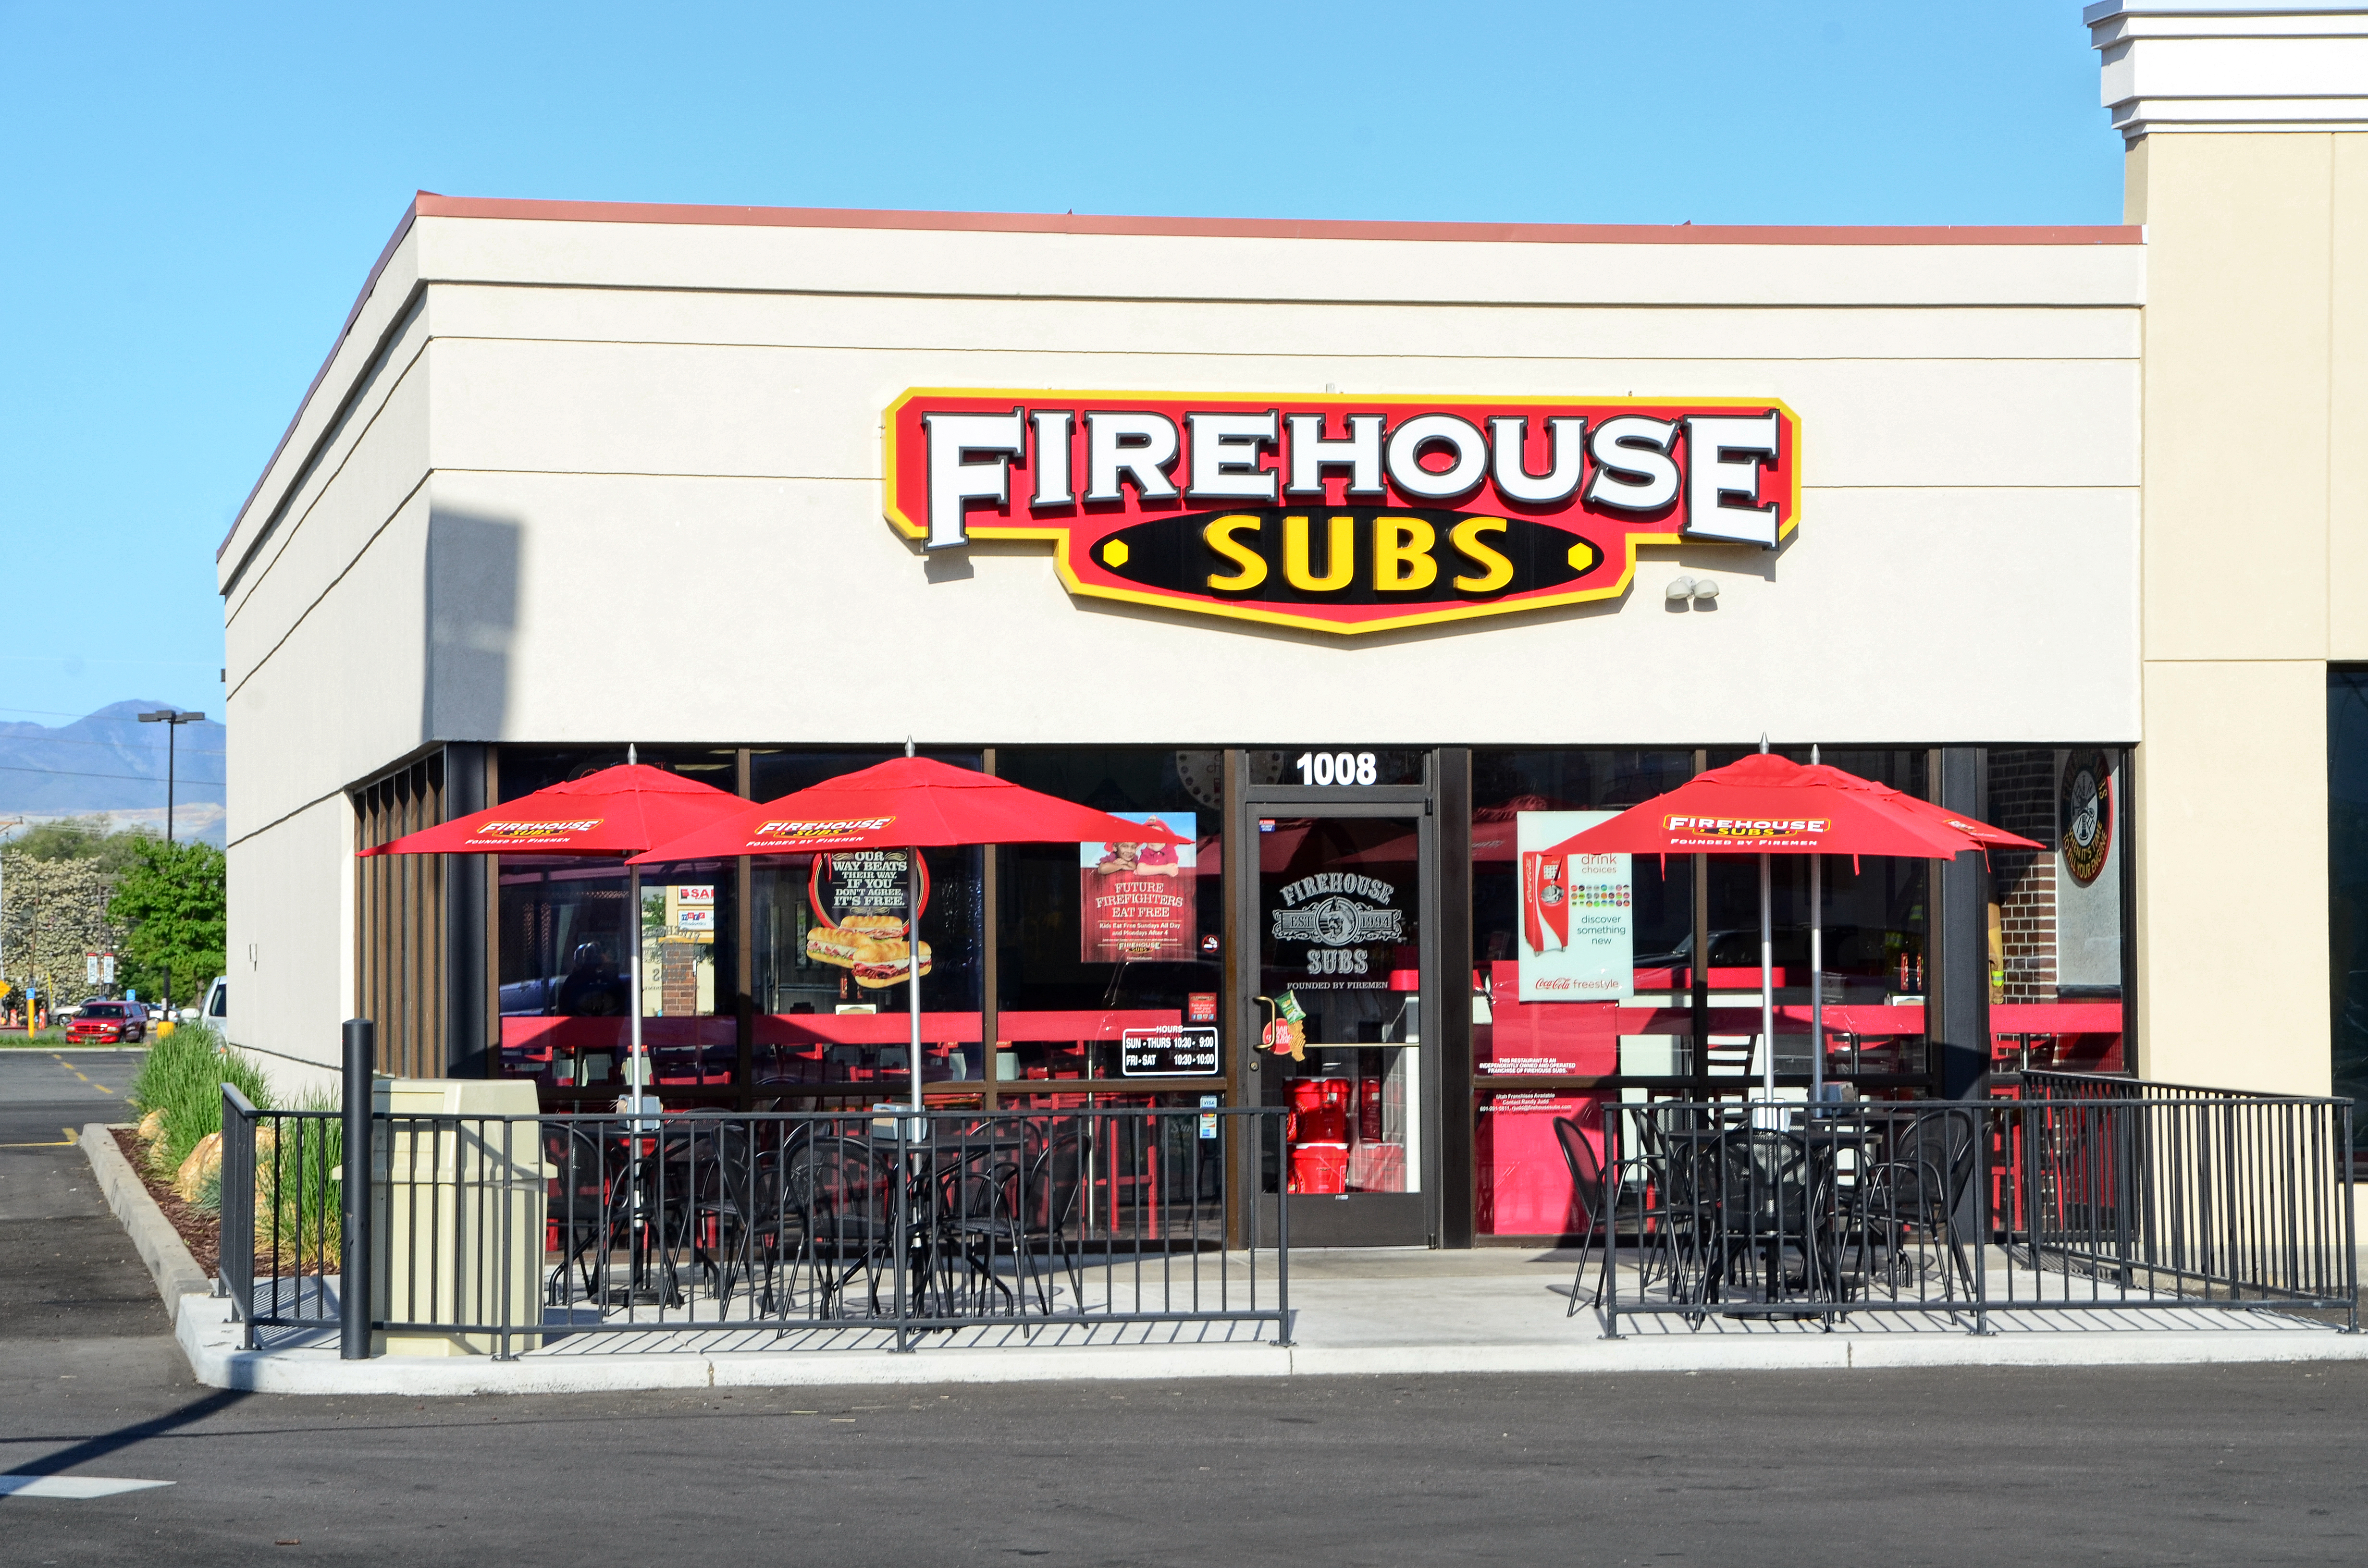 About Firehouse Subs